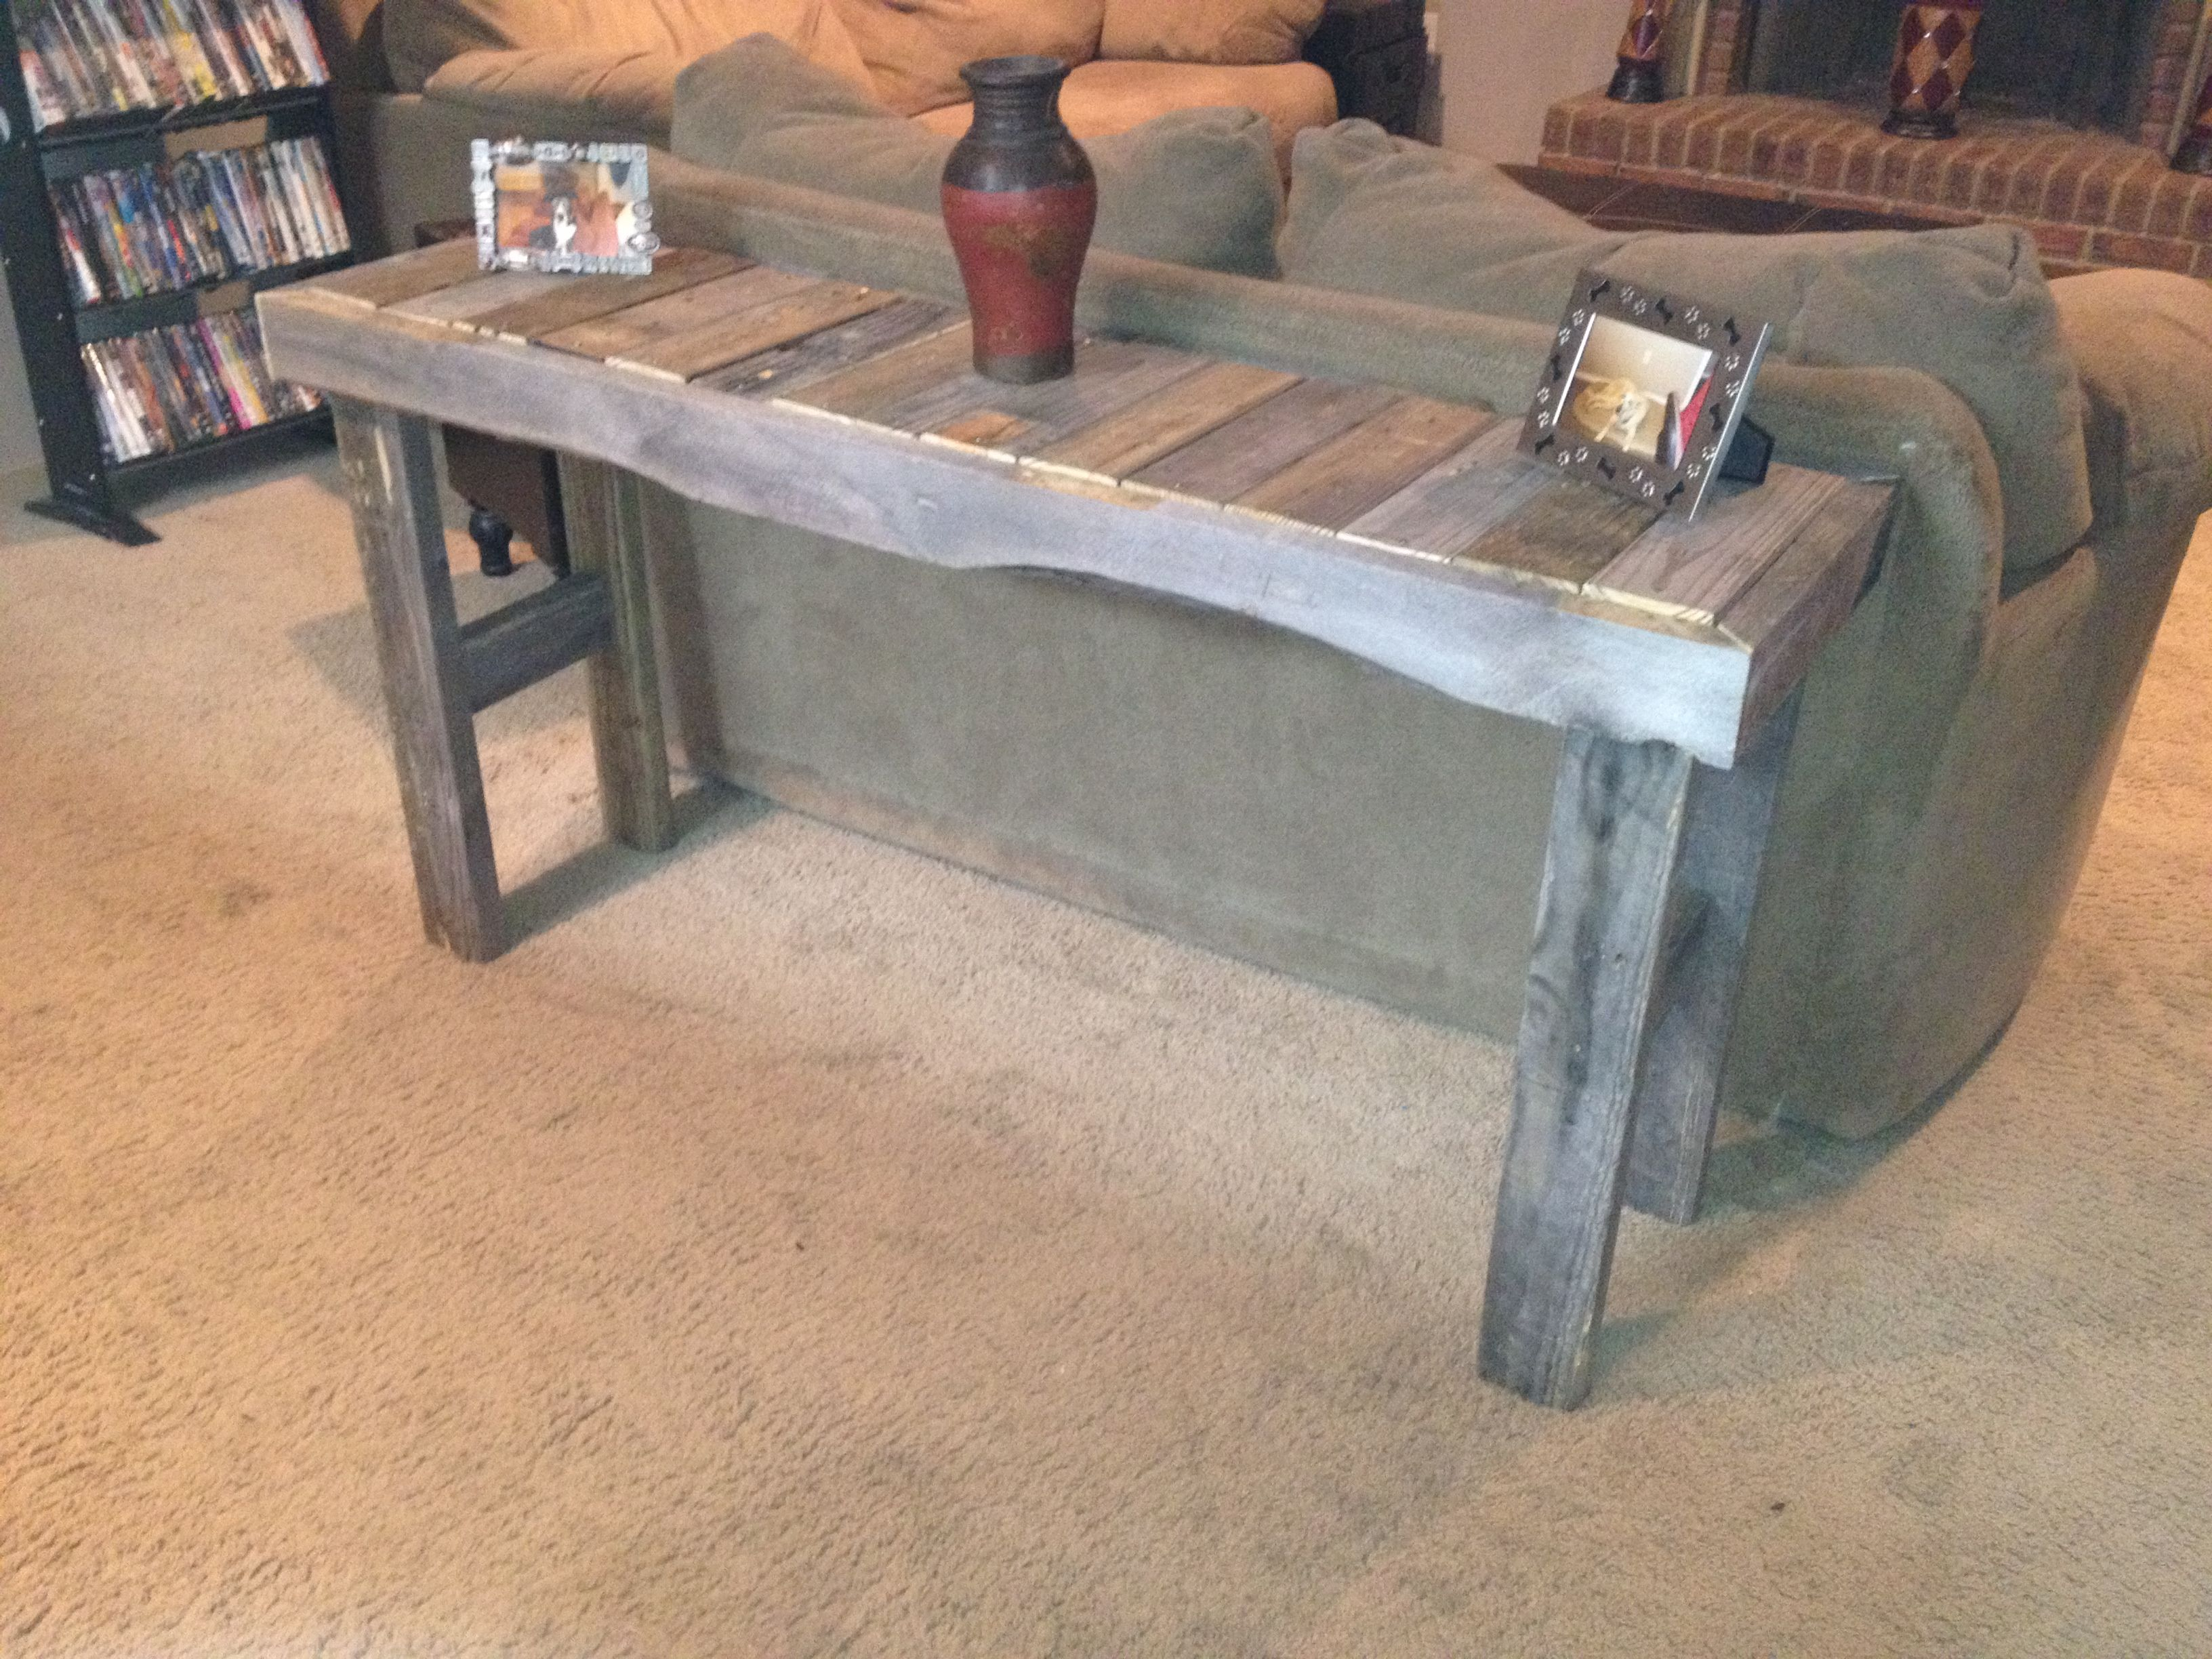 Diy Pallet Sofa Table Instructions Sofas With Beds Made From Pallets Things I Built Pinterest